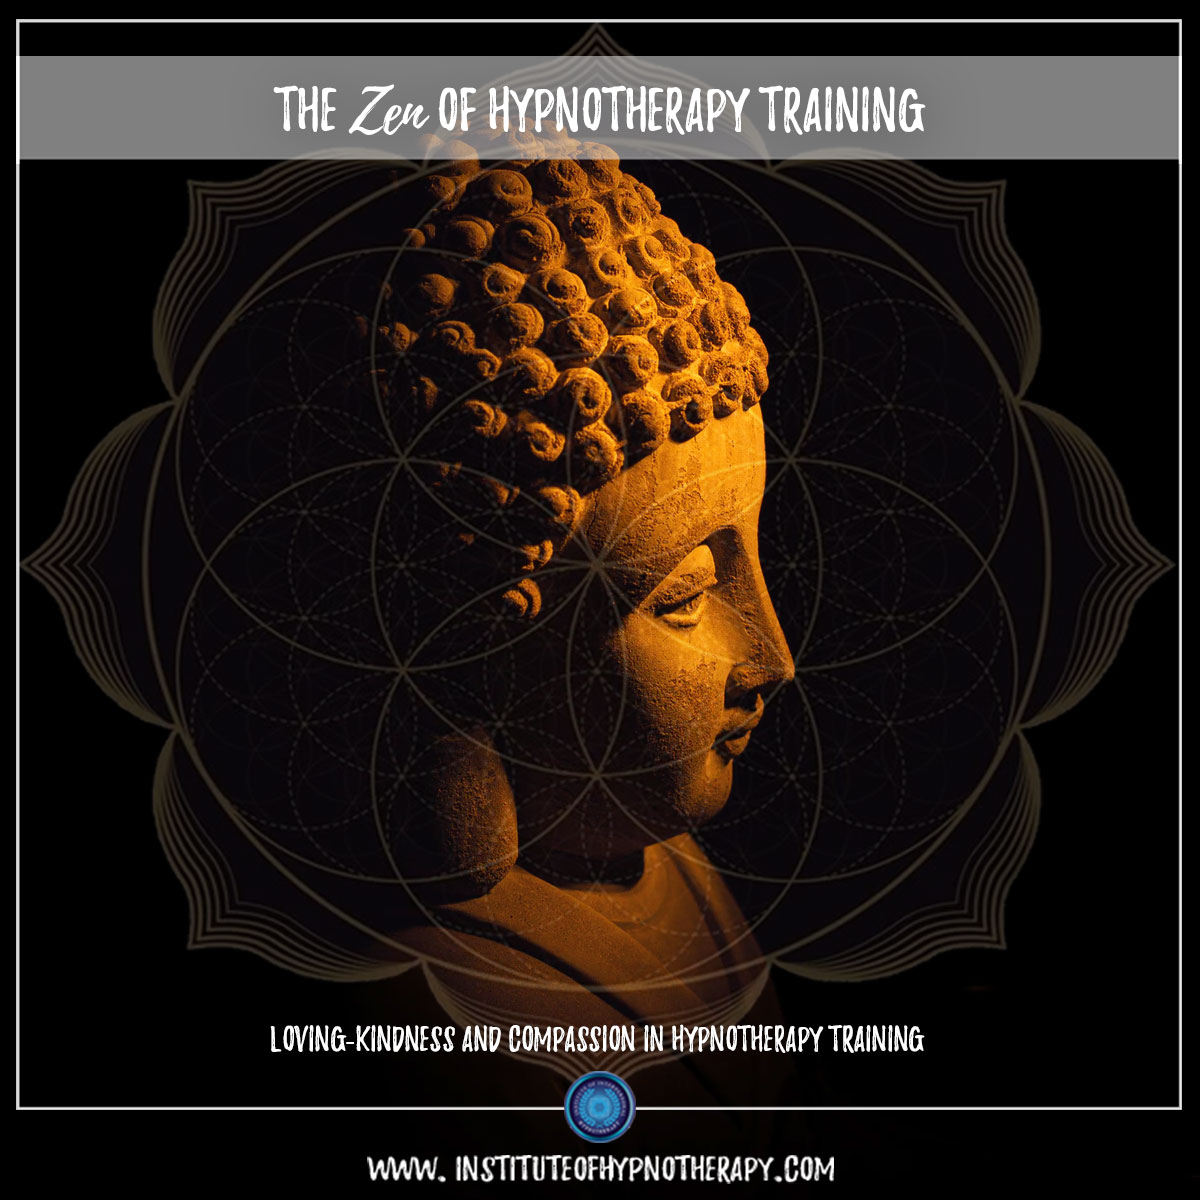 Hypnotherapy – The Zen of Hypnotherapy Training